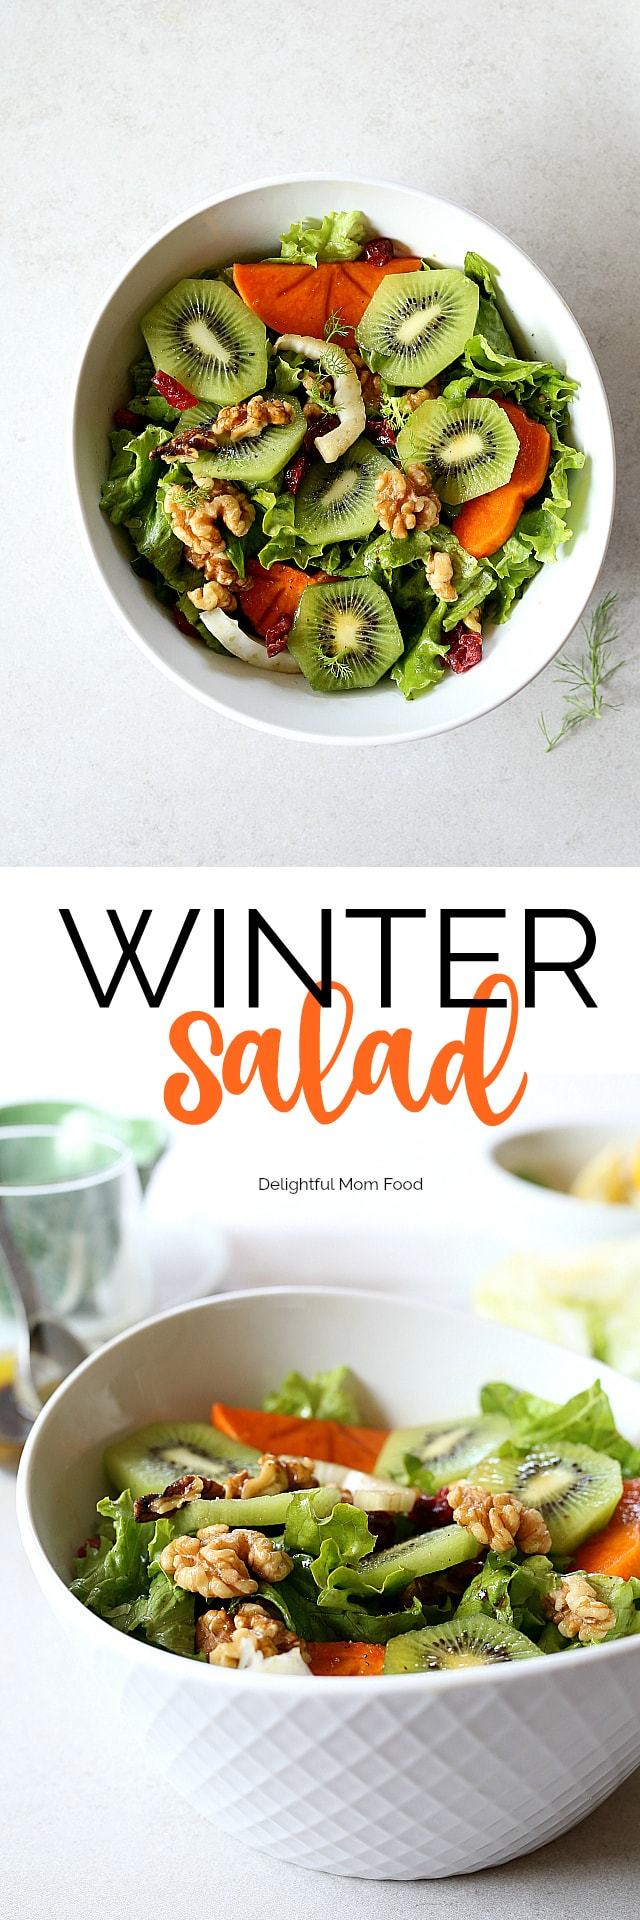 Winter Salad with Kiwi, Persimmons, Walnuts and Cranberry in a walnut vinaigrette dressing. Top the green salad with dried cranberries or pomegranate seeds for an extra burst of color and tang!